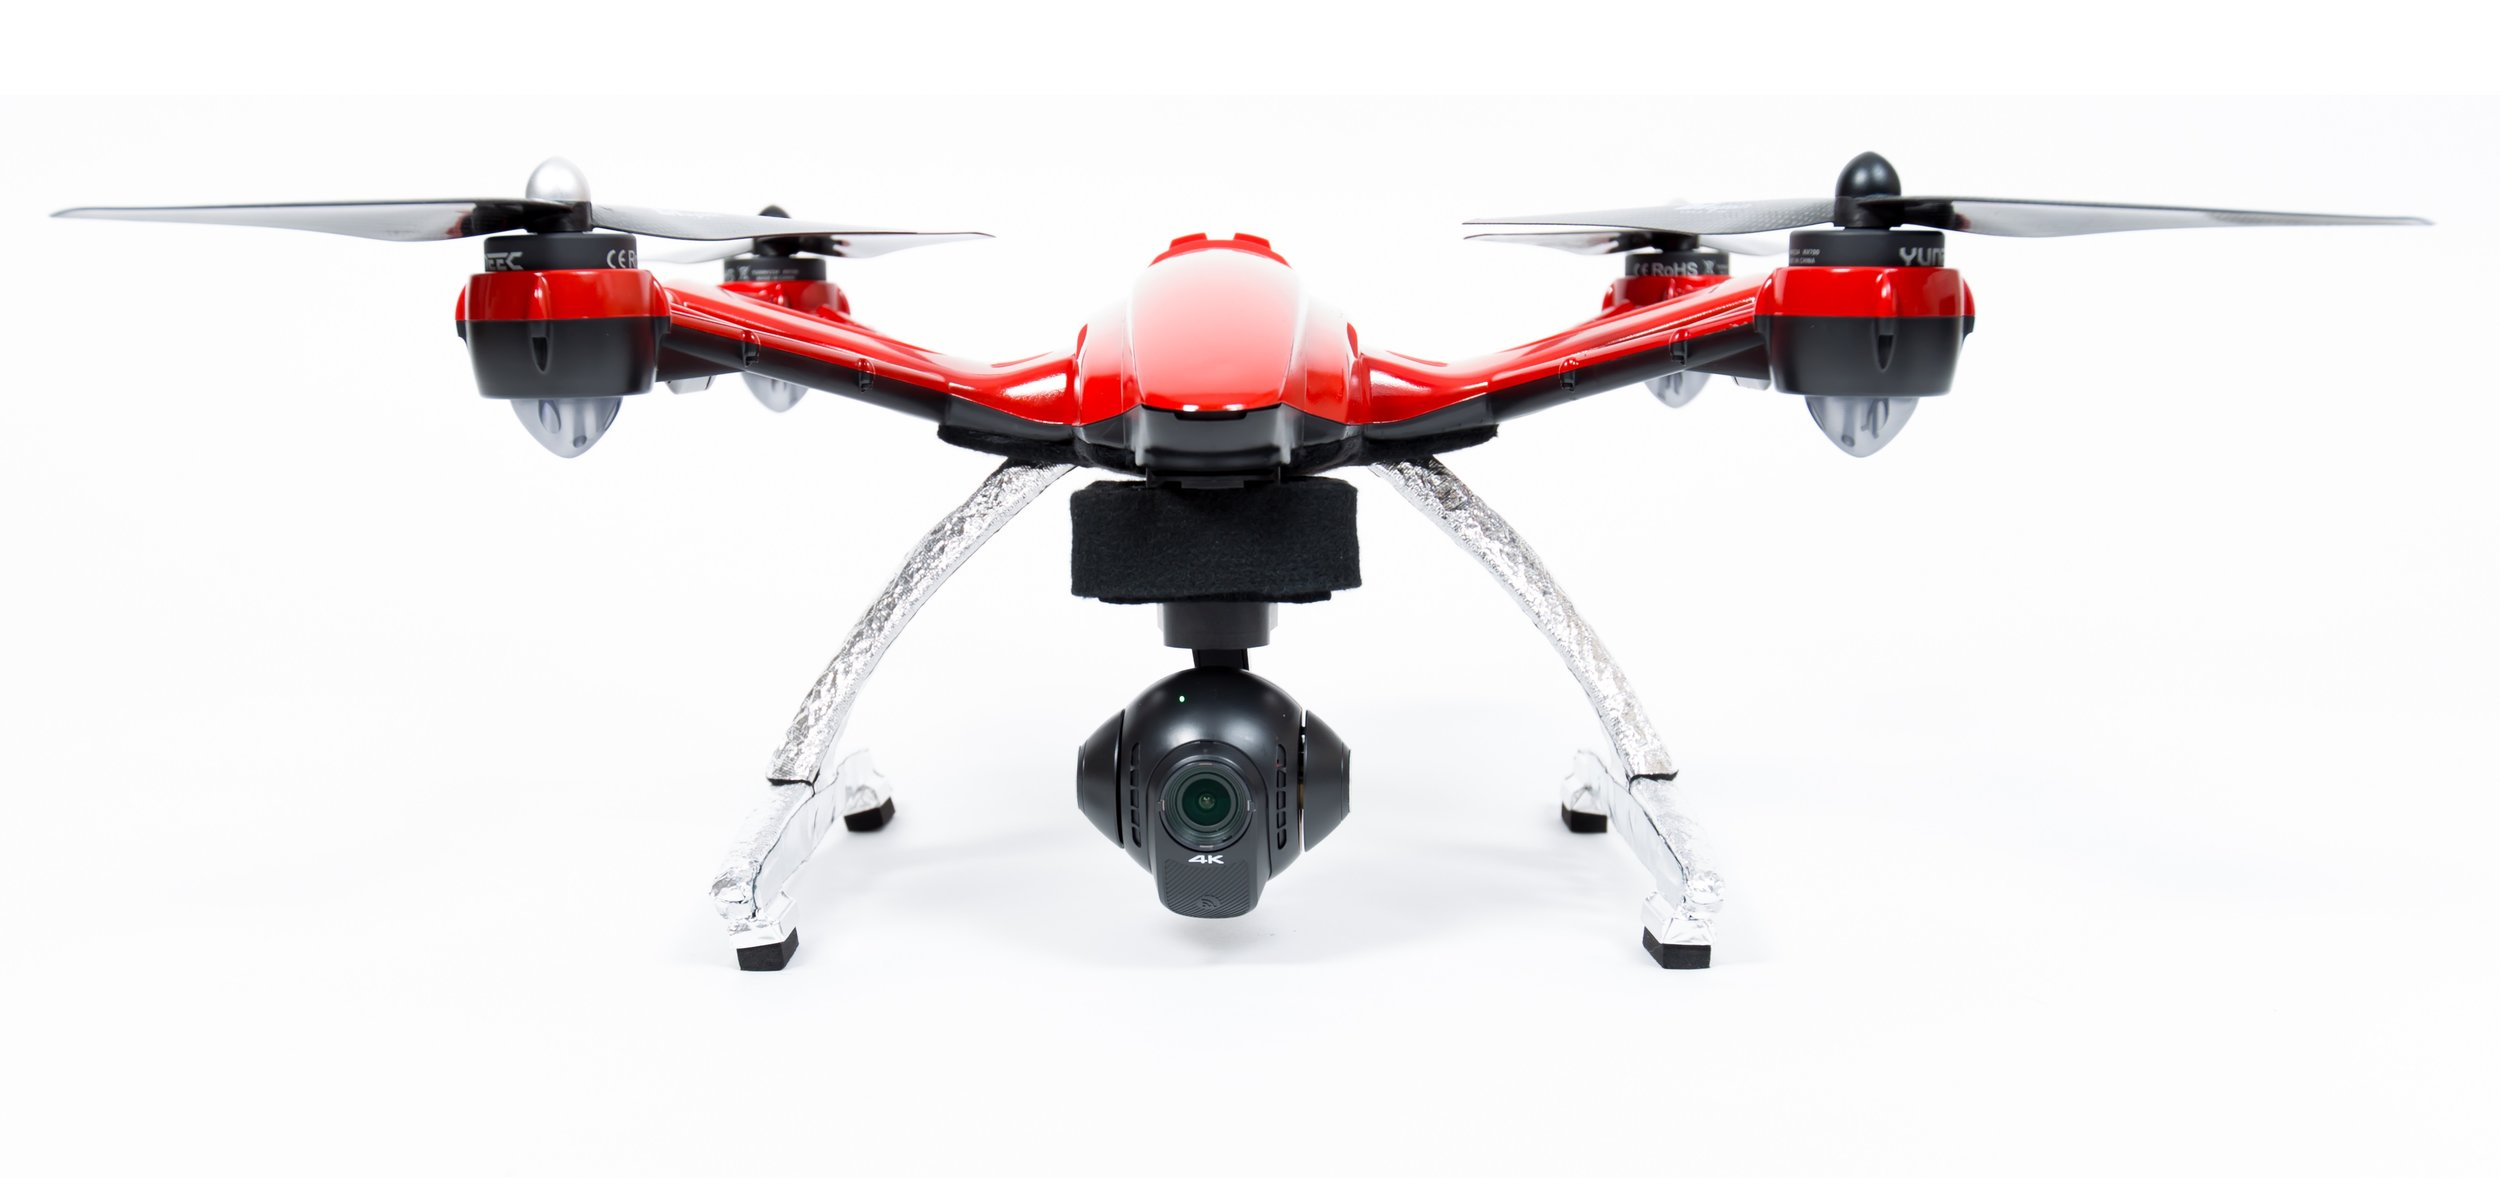 Public Safety #1 - The FD-USA Quadcopter FR is rugged and reliable. Made with a patented pre-oxidized polyacrylonitrile fiber, and carbon fiber rotor blades, designed for lasting durability.